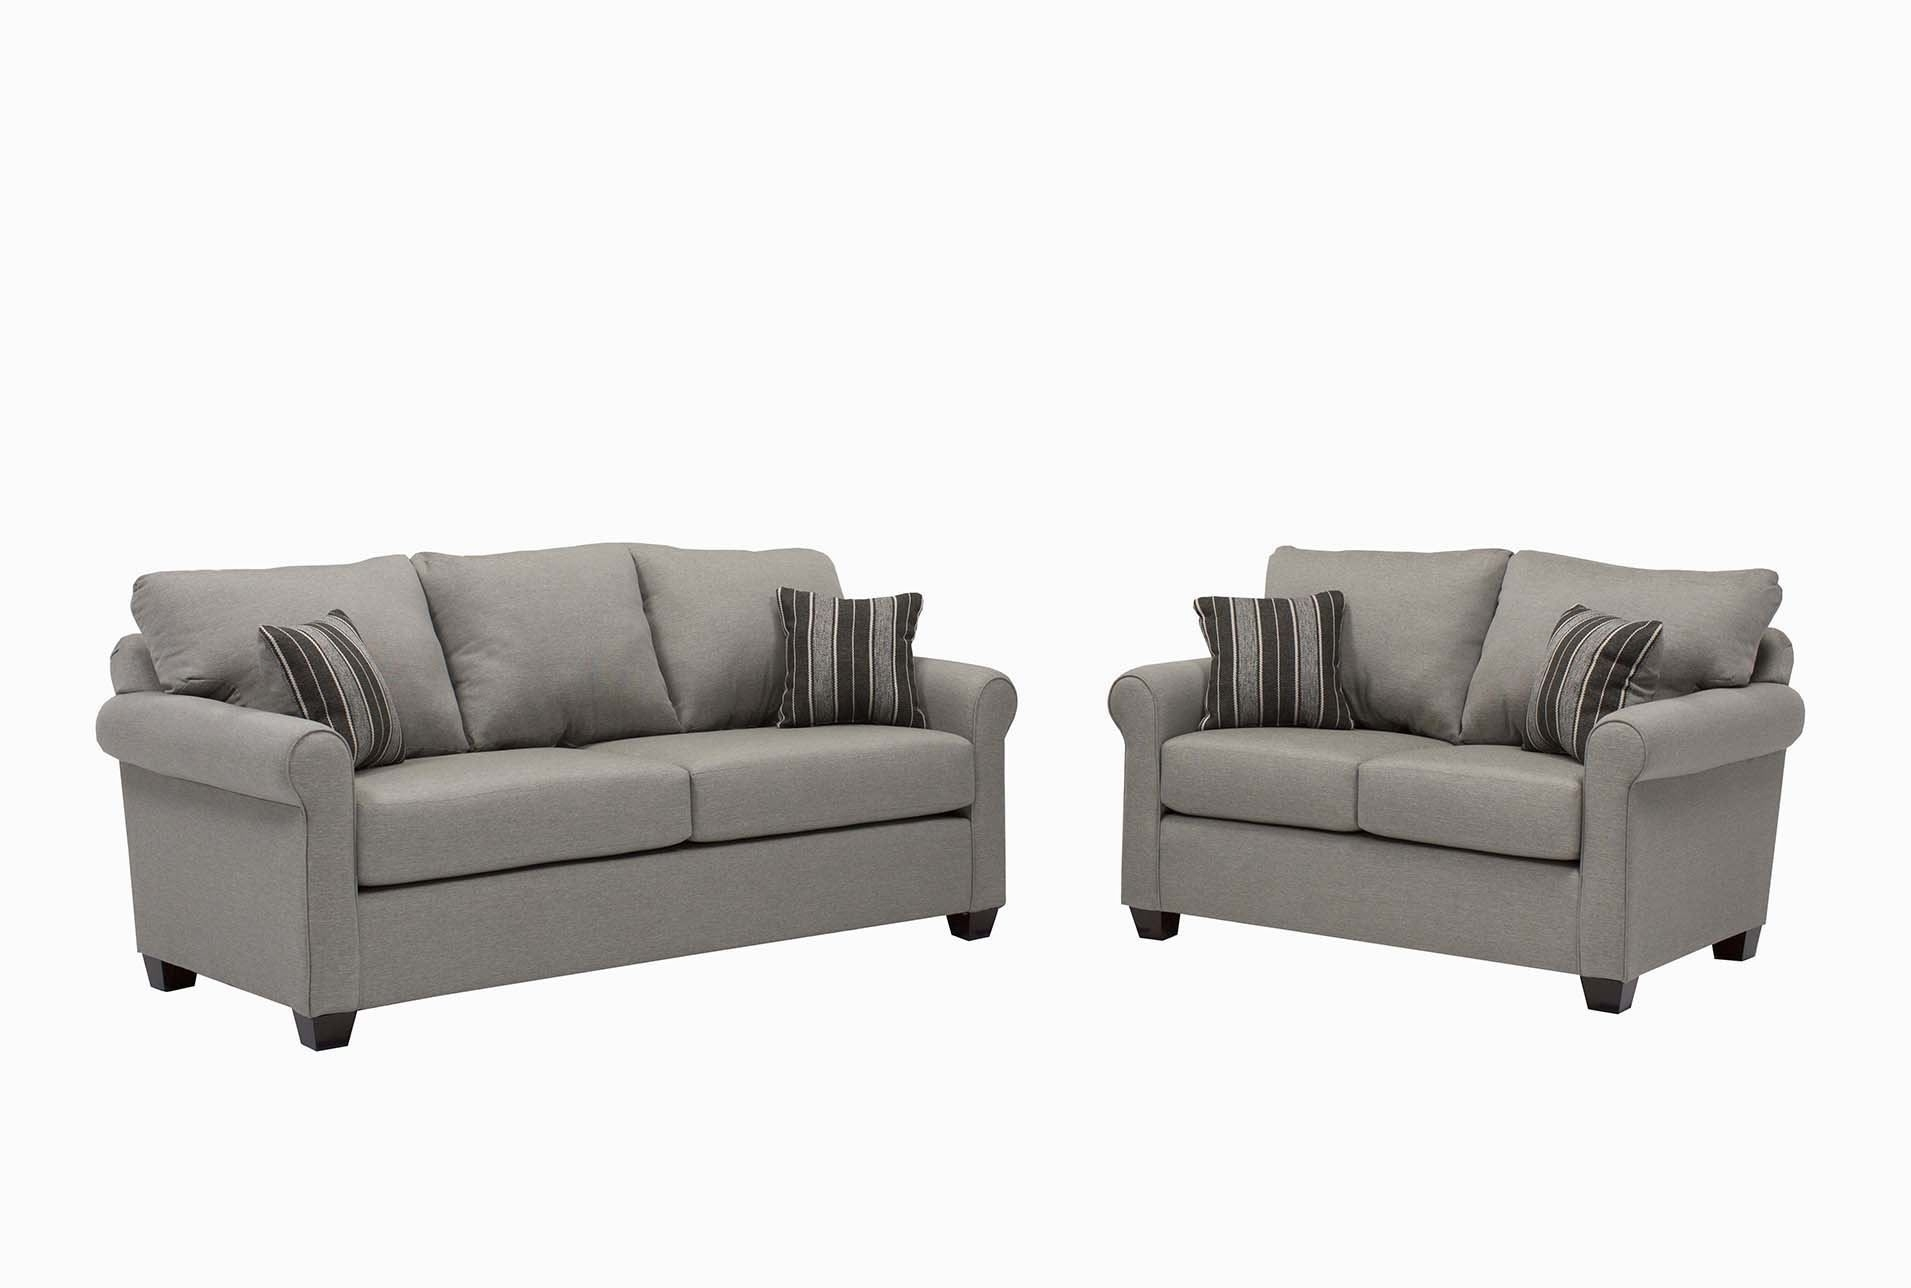 Gregory Sofa/loveseat | A Likes | Pinterest | Fabric Sofa throughout Turdur 2 Piece Sectionals With Laf Loveseat (Image 8 of 30)